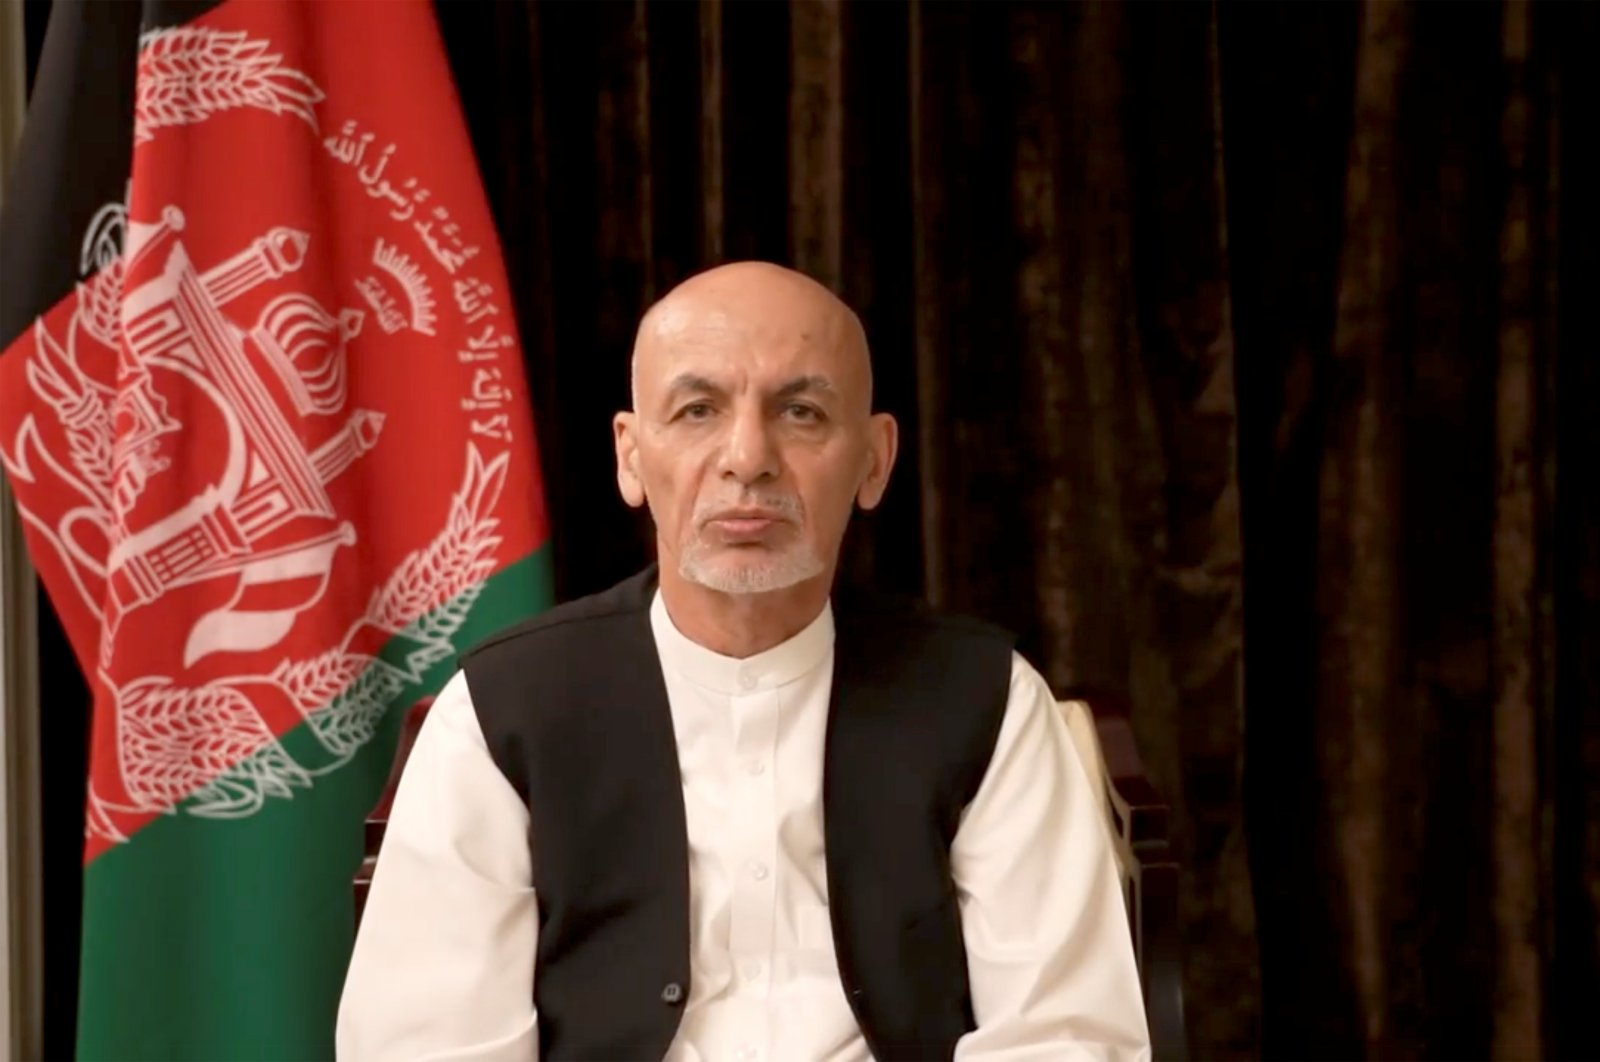 In this screengrab obtained from social media, former Afghan President Ashraf Ghani makes an address about the latest developments in the country from exile in the United Arab Emirates (UAE), Aug. 18, 2021. (Facebook/Ashraf Ghani via Reuters)